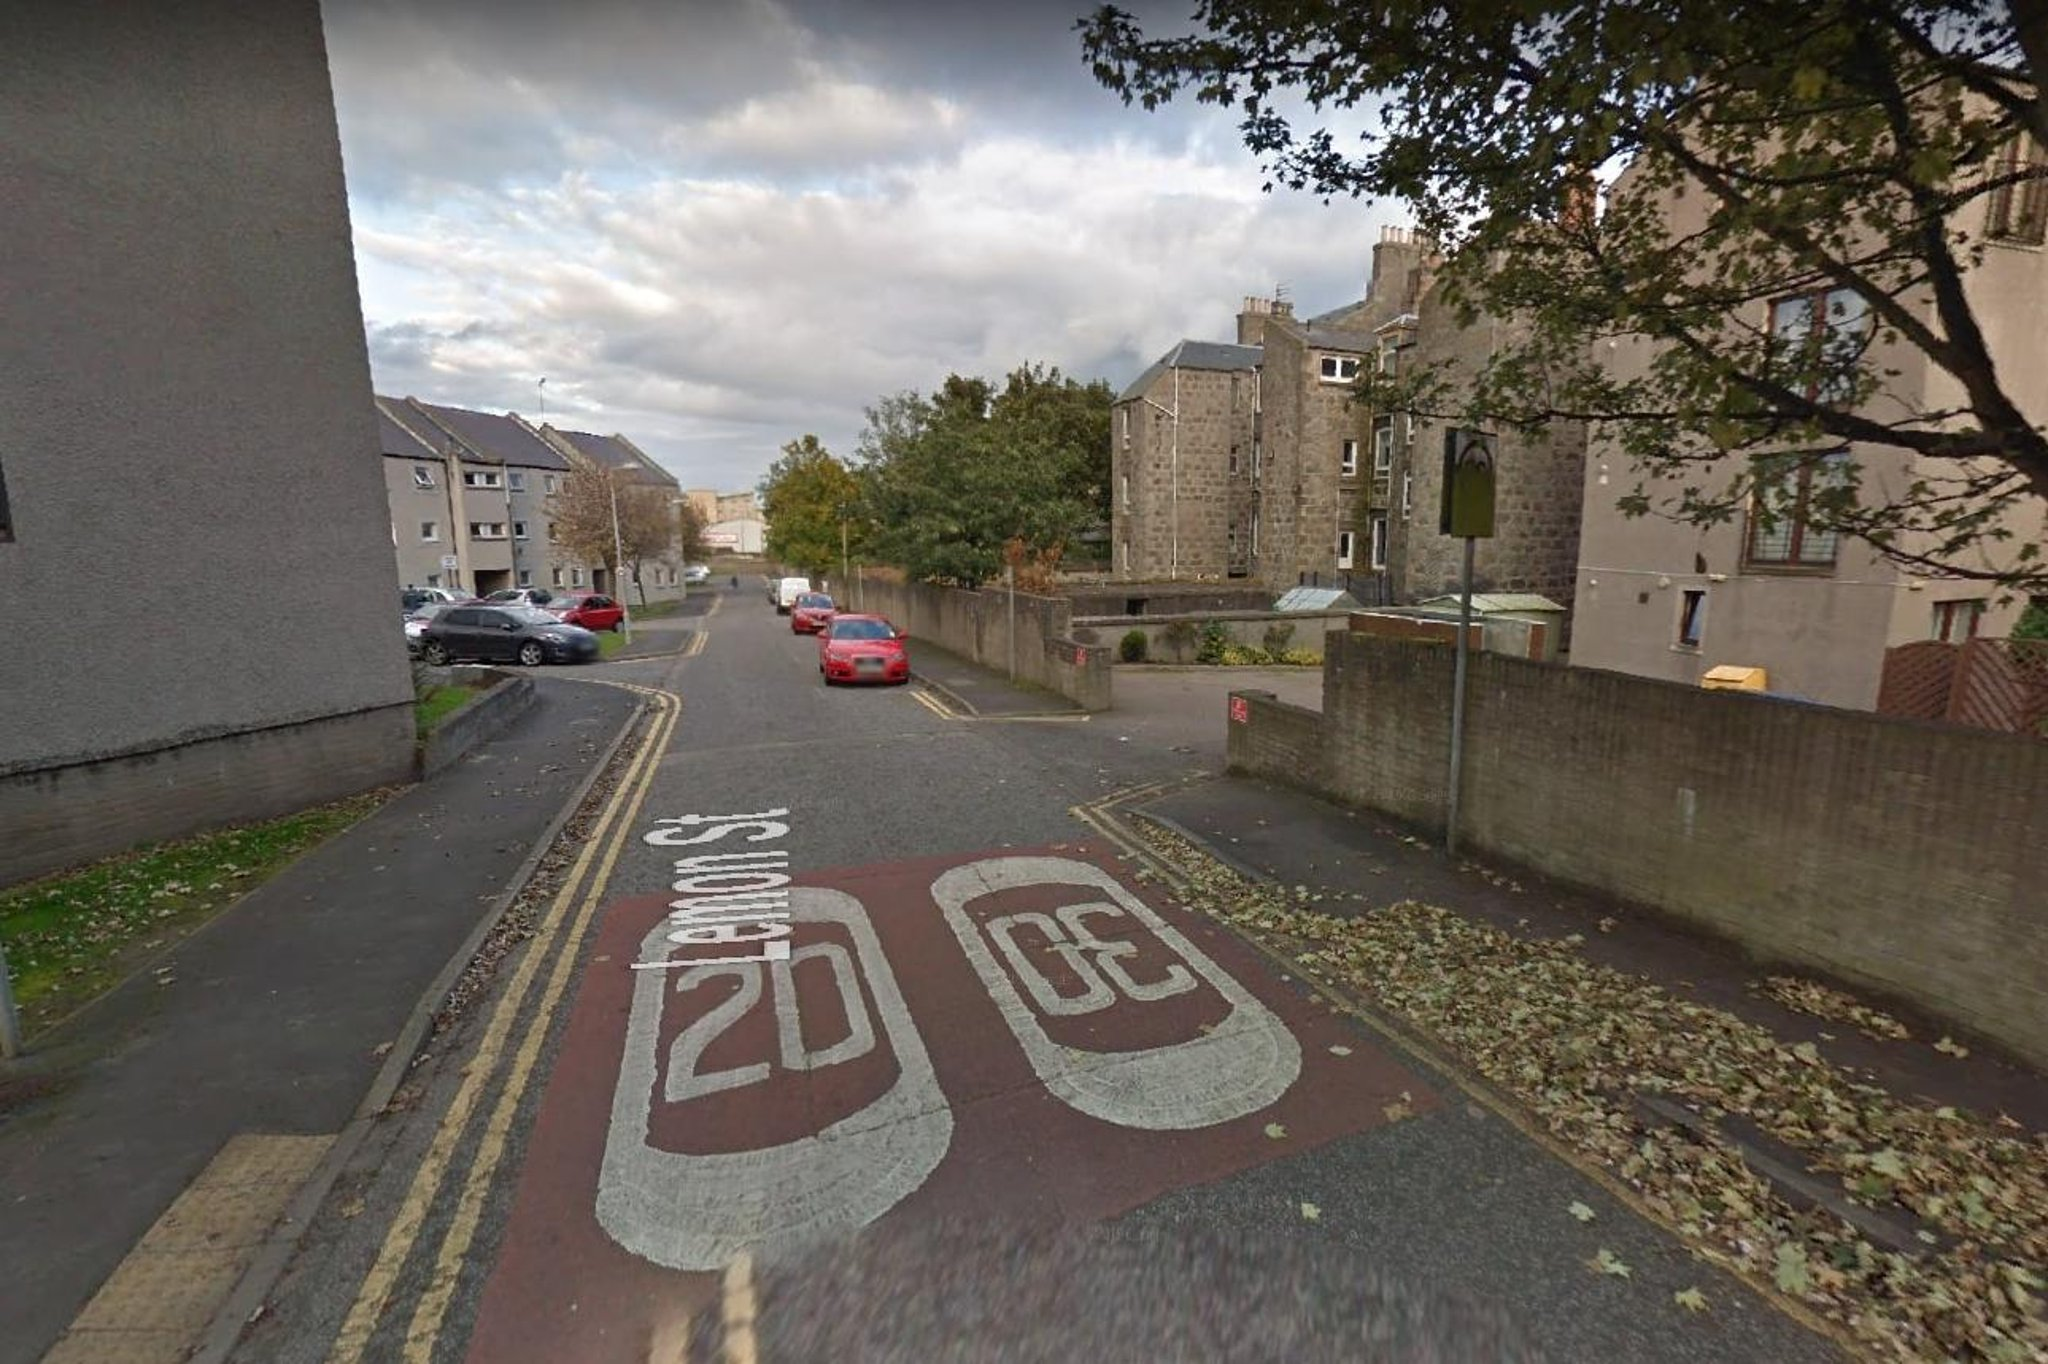 Aberdeen incident: Armed police cordon off Aberdeen street to deal with disturbance